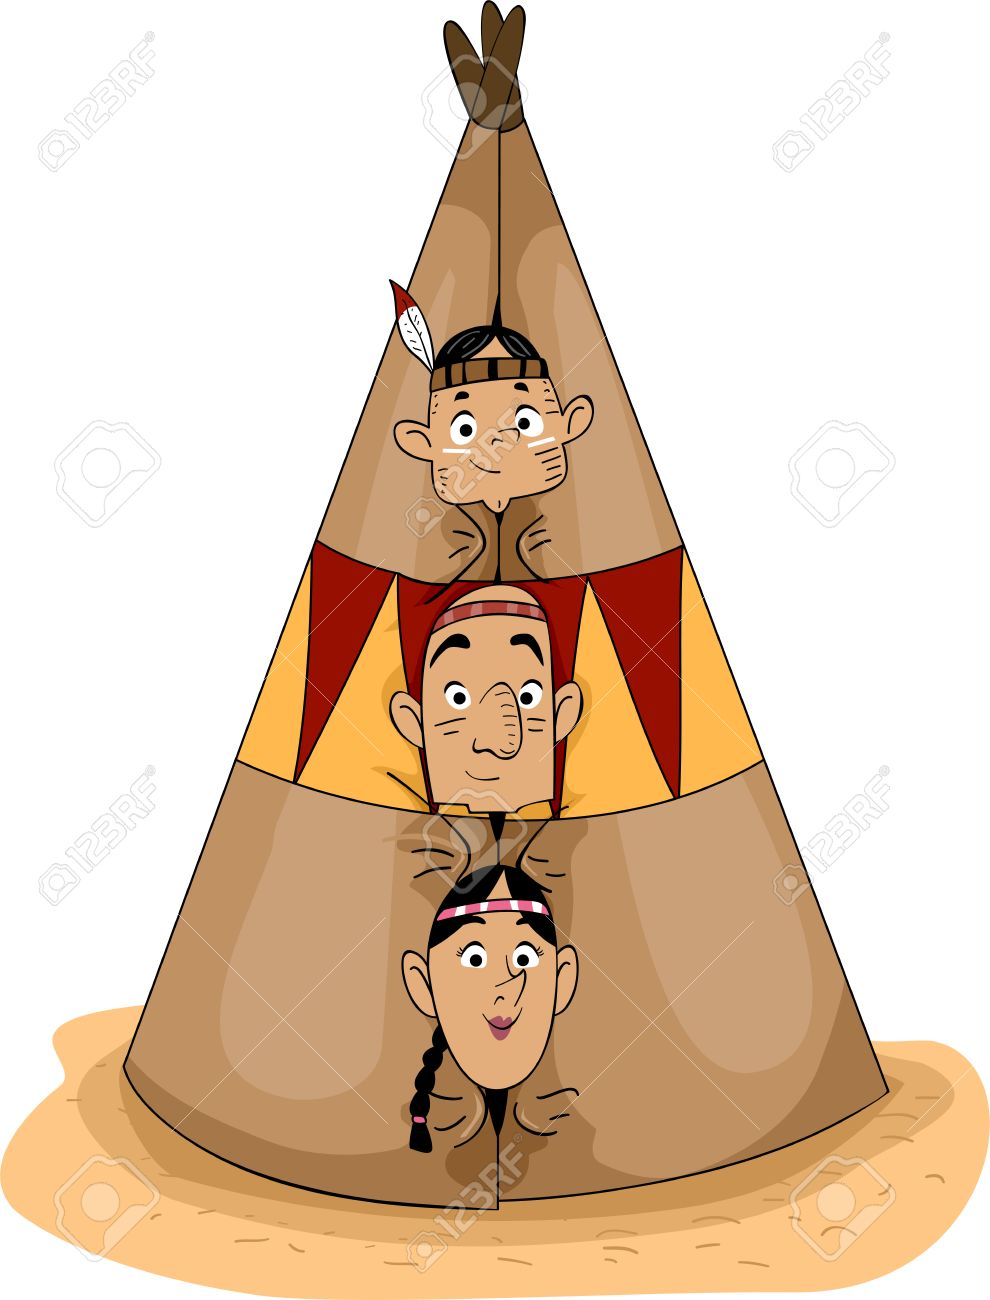 Illustration of a Native American Family Peeking from a Teepee Stock Illustration - 22812350